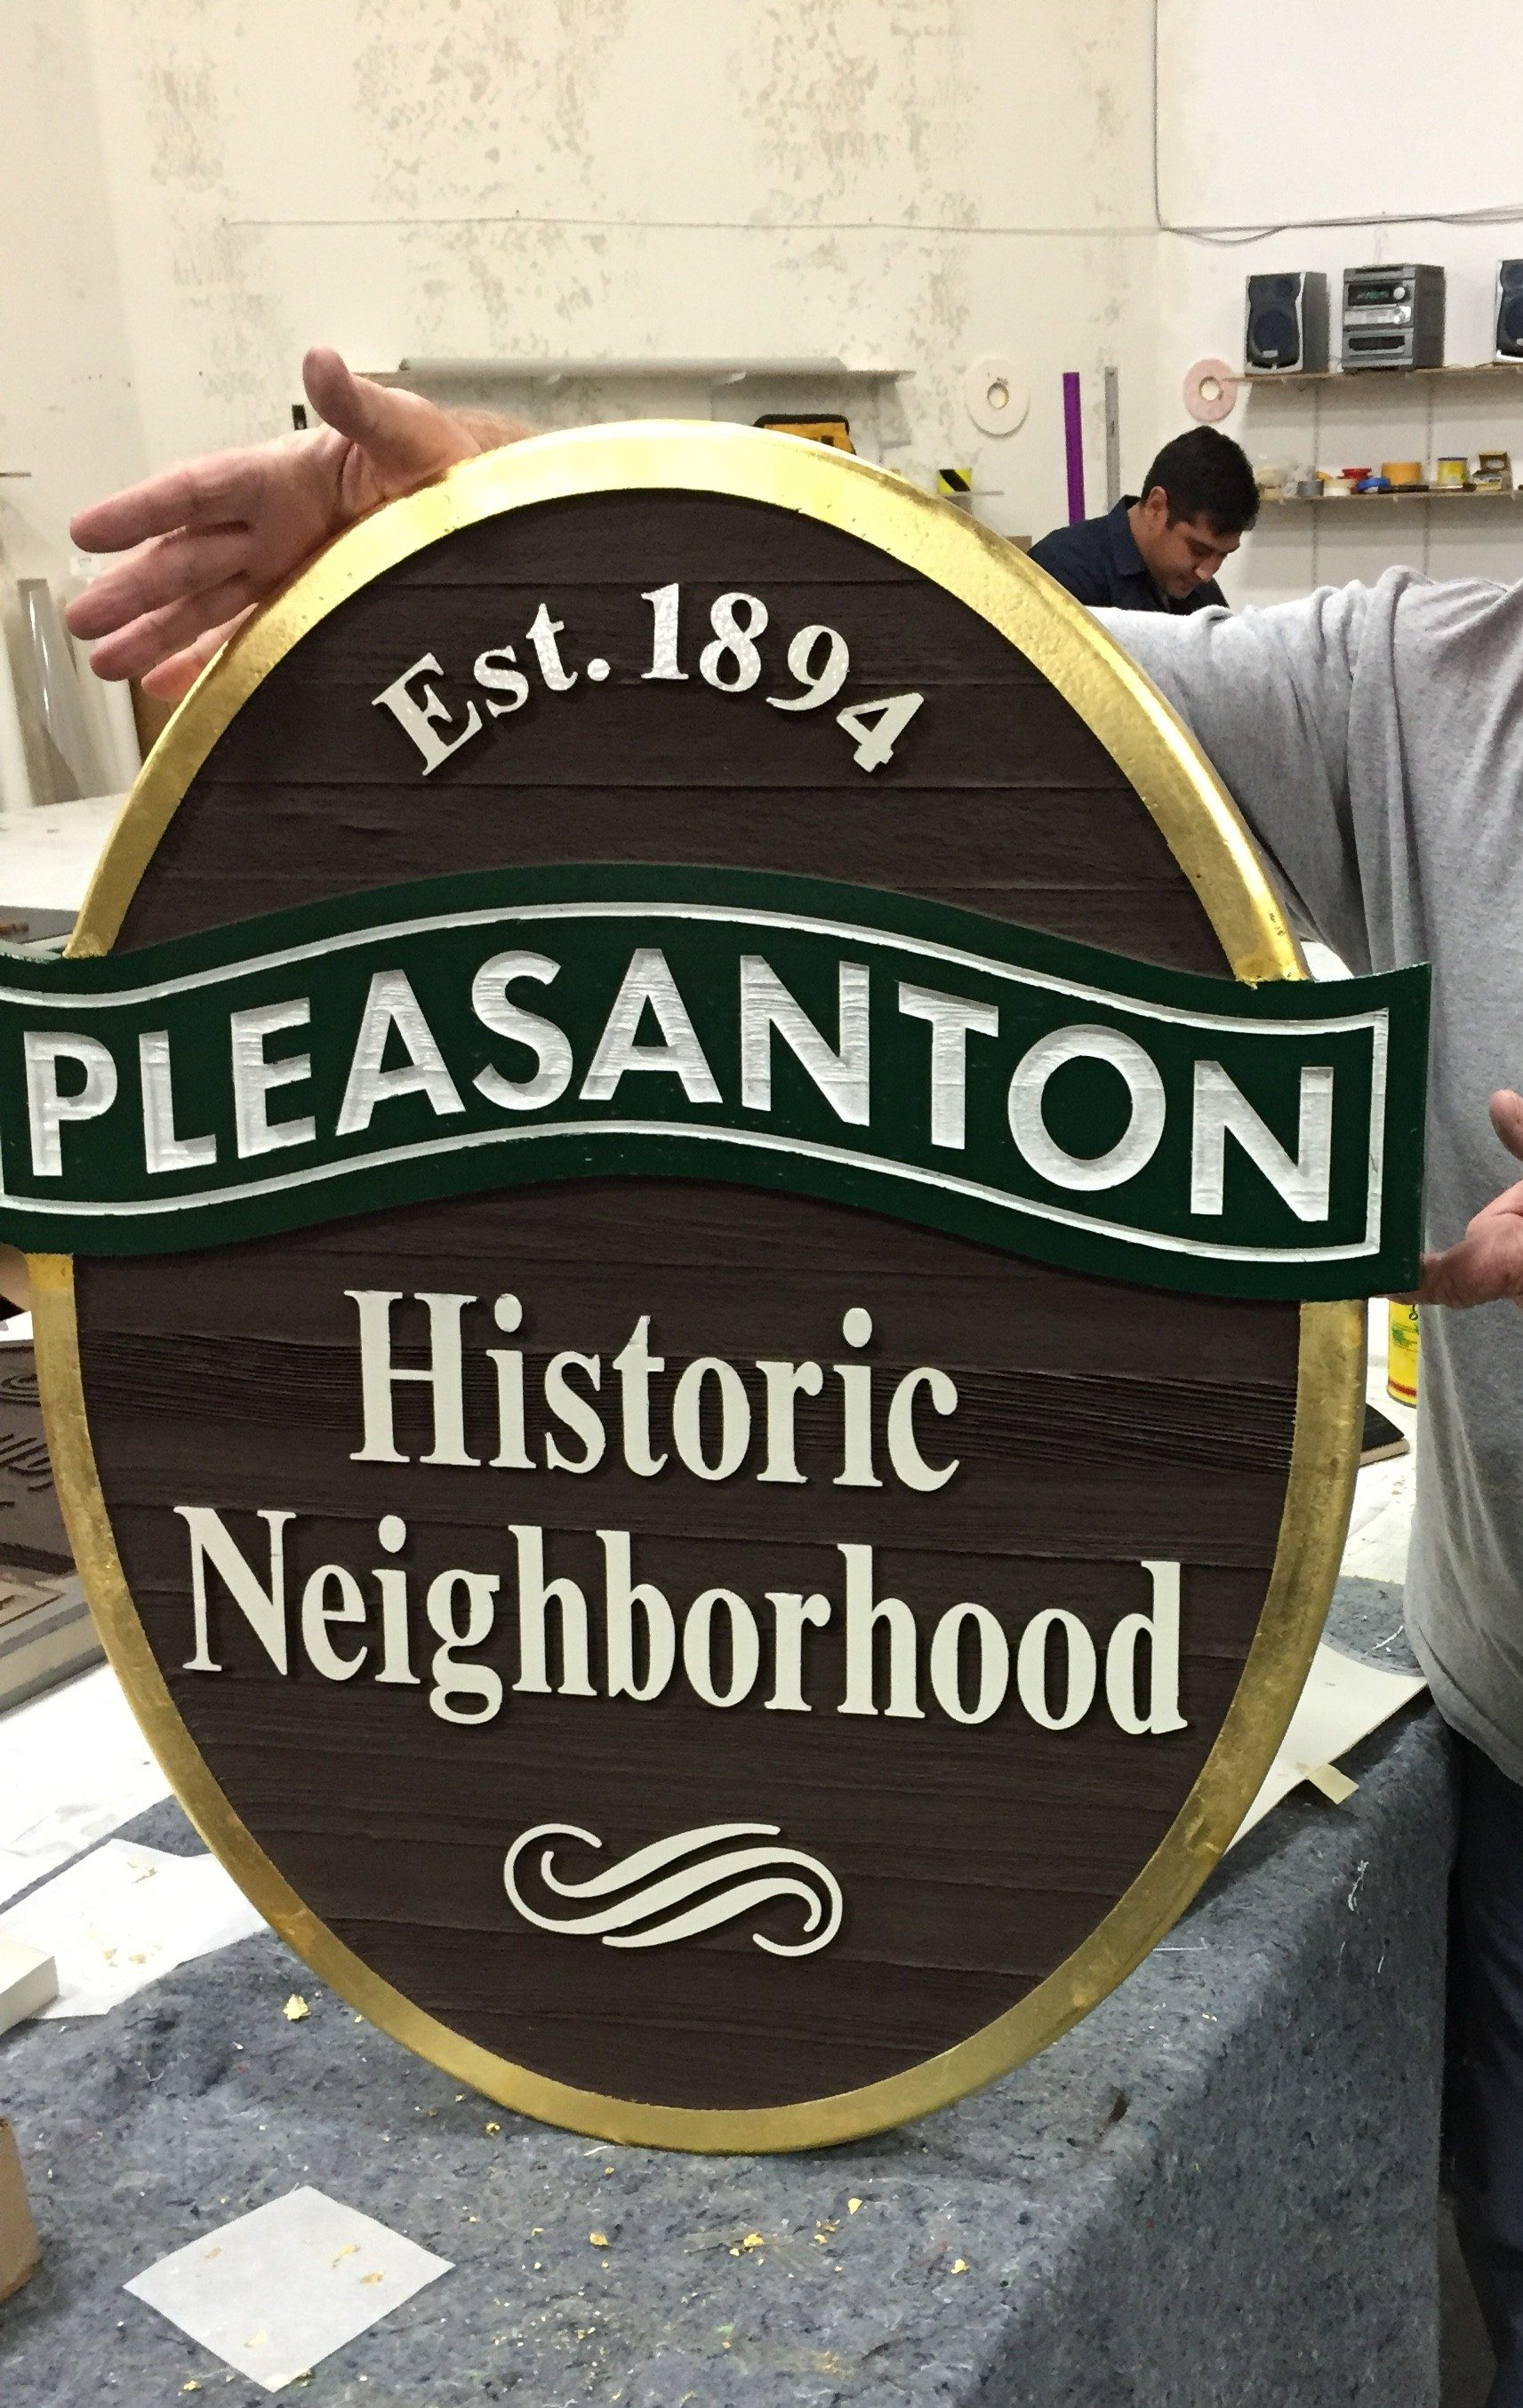 Sandblasted wood goldleaf sign for Pleasanton, CA